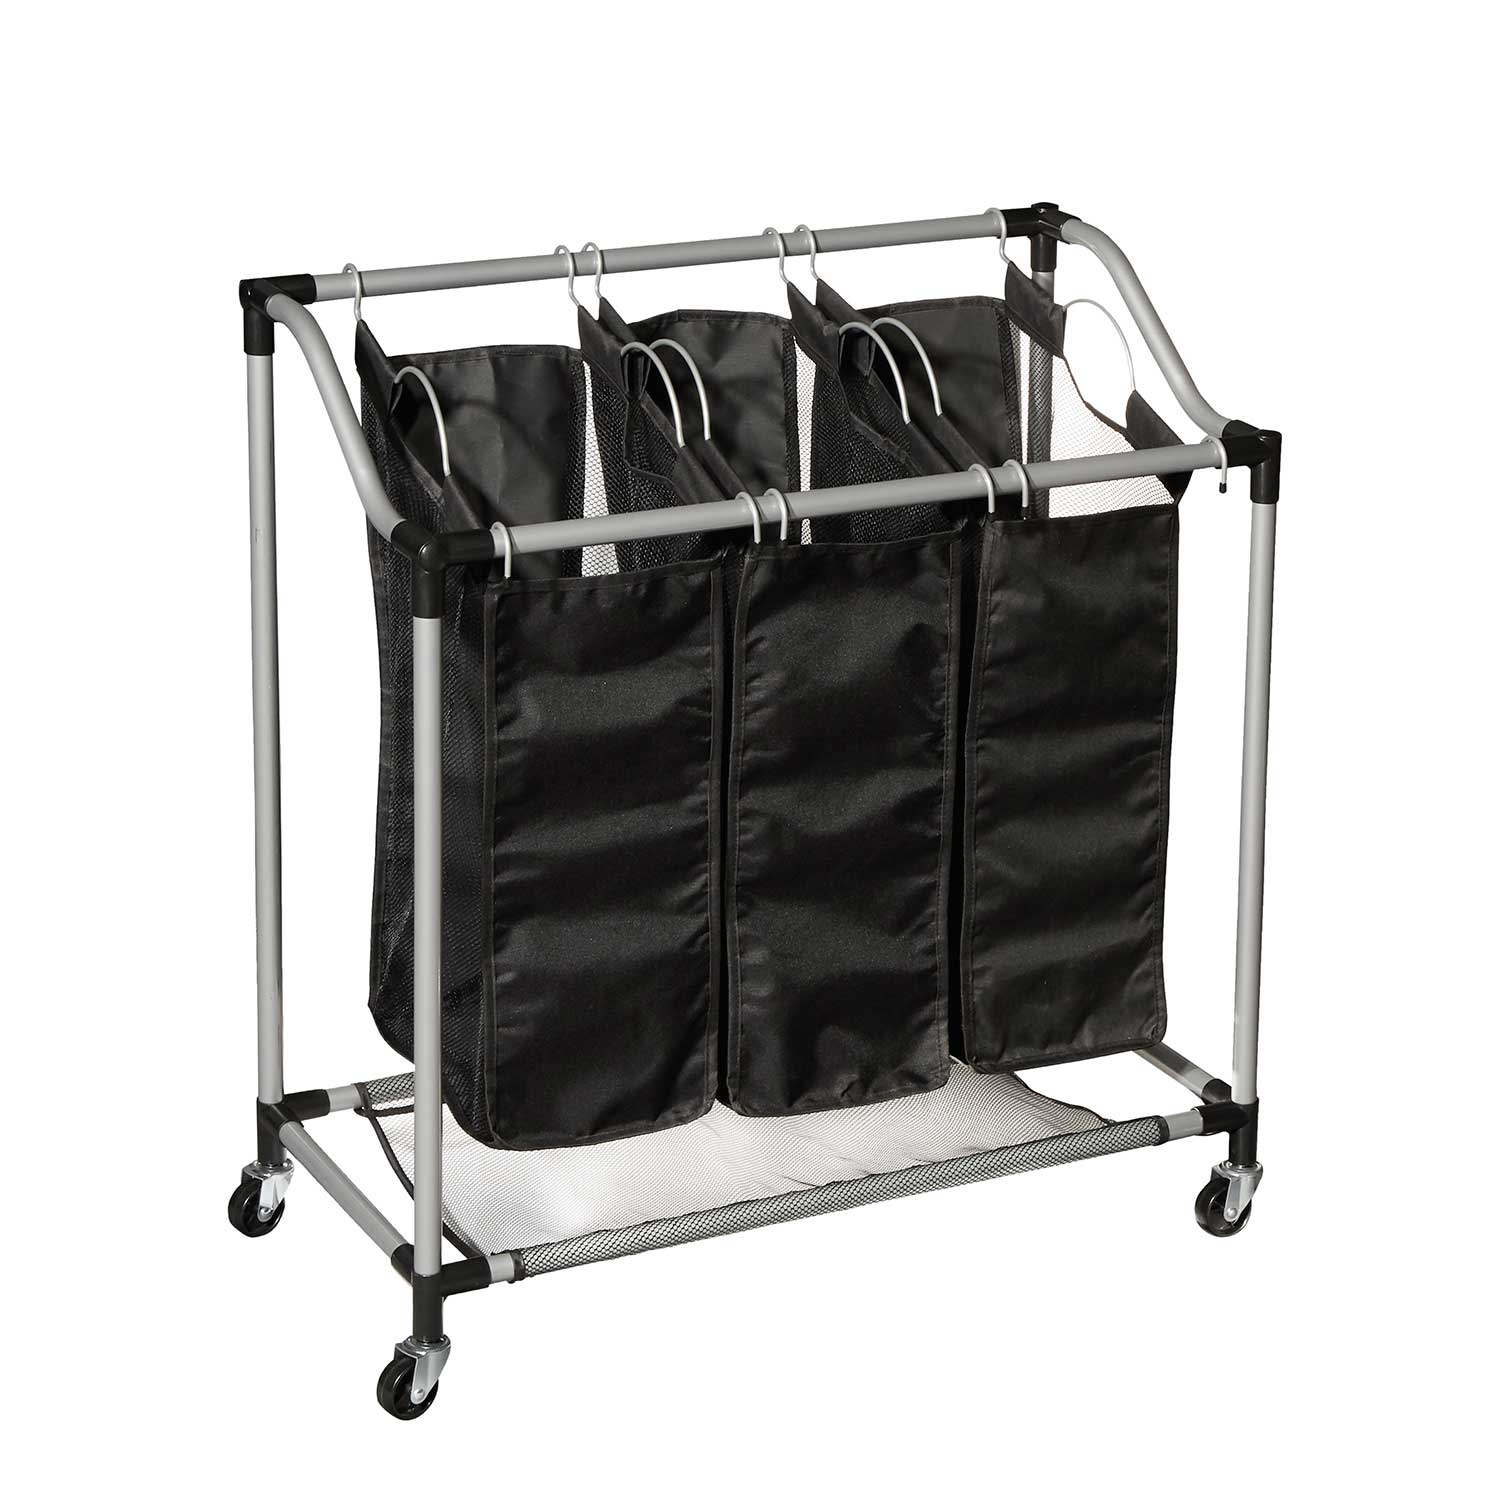 3 Bin Laundry Sorter with Wheels (83100)